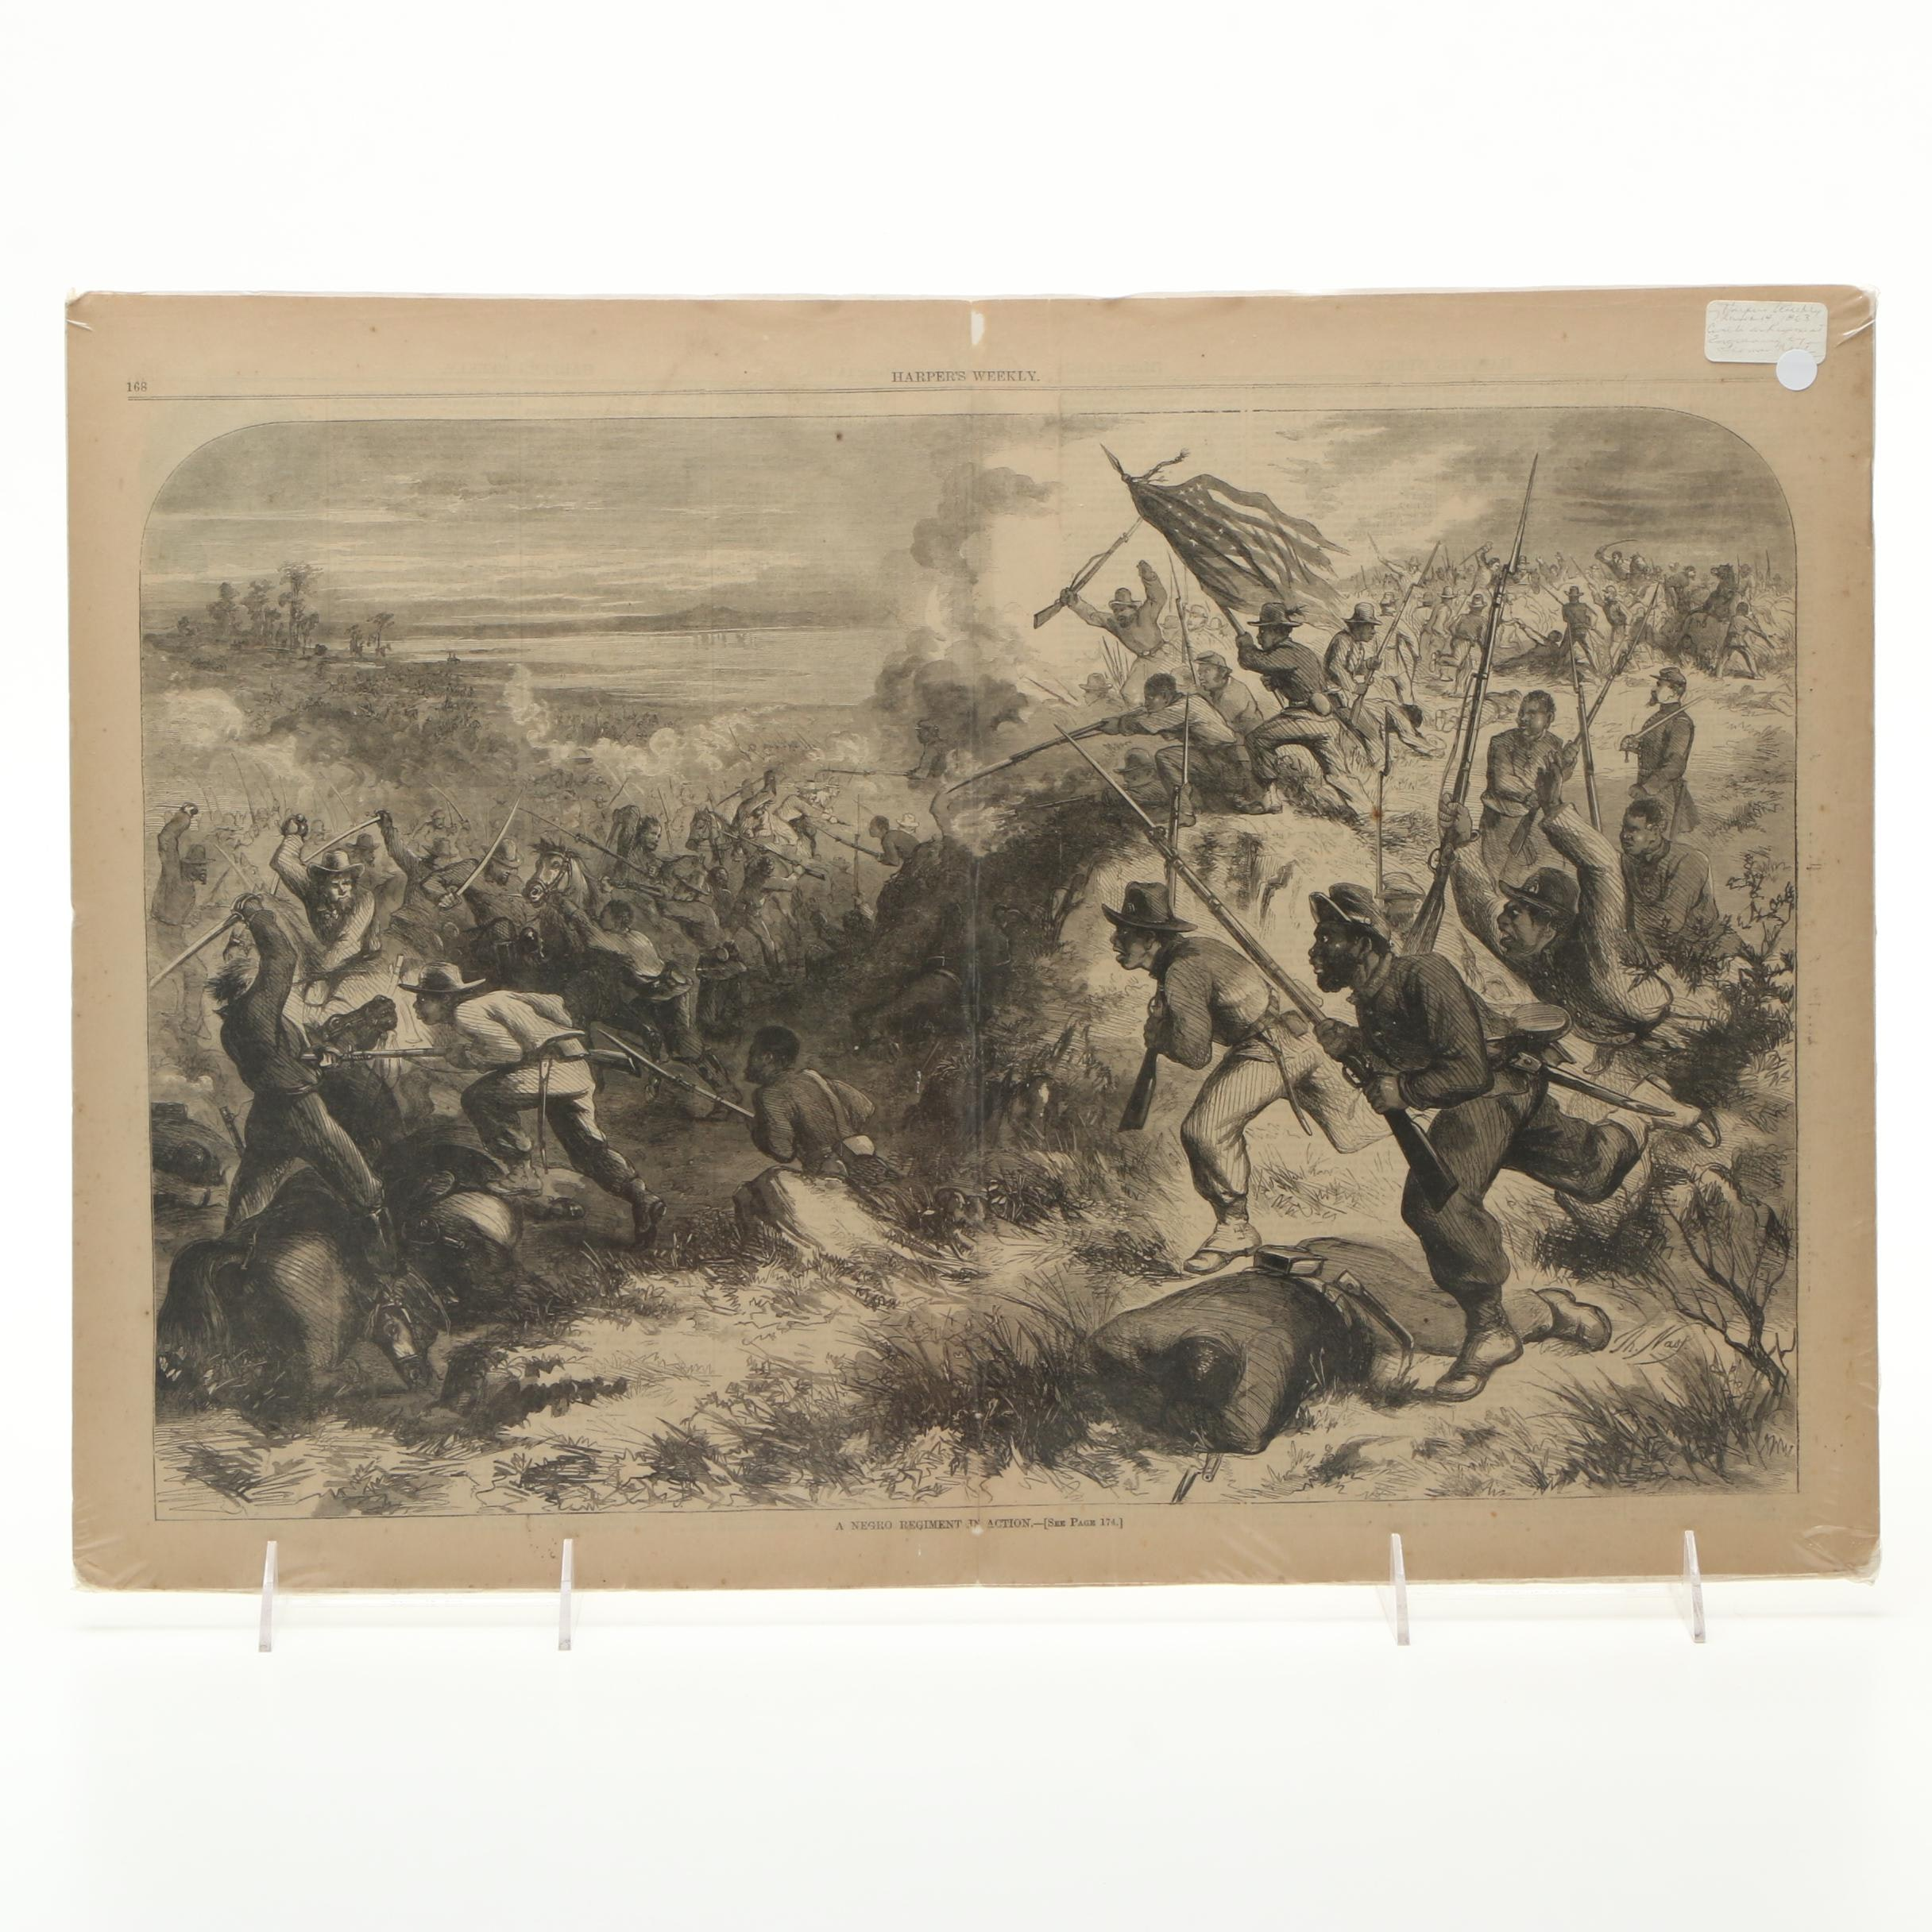 """1863 Harper's Weekly Engraving After T. Nast """"A Negro Regiment in Action"""""""